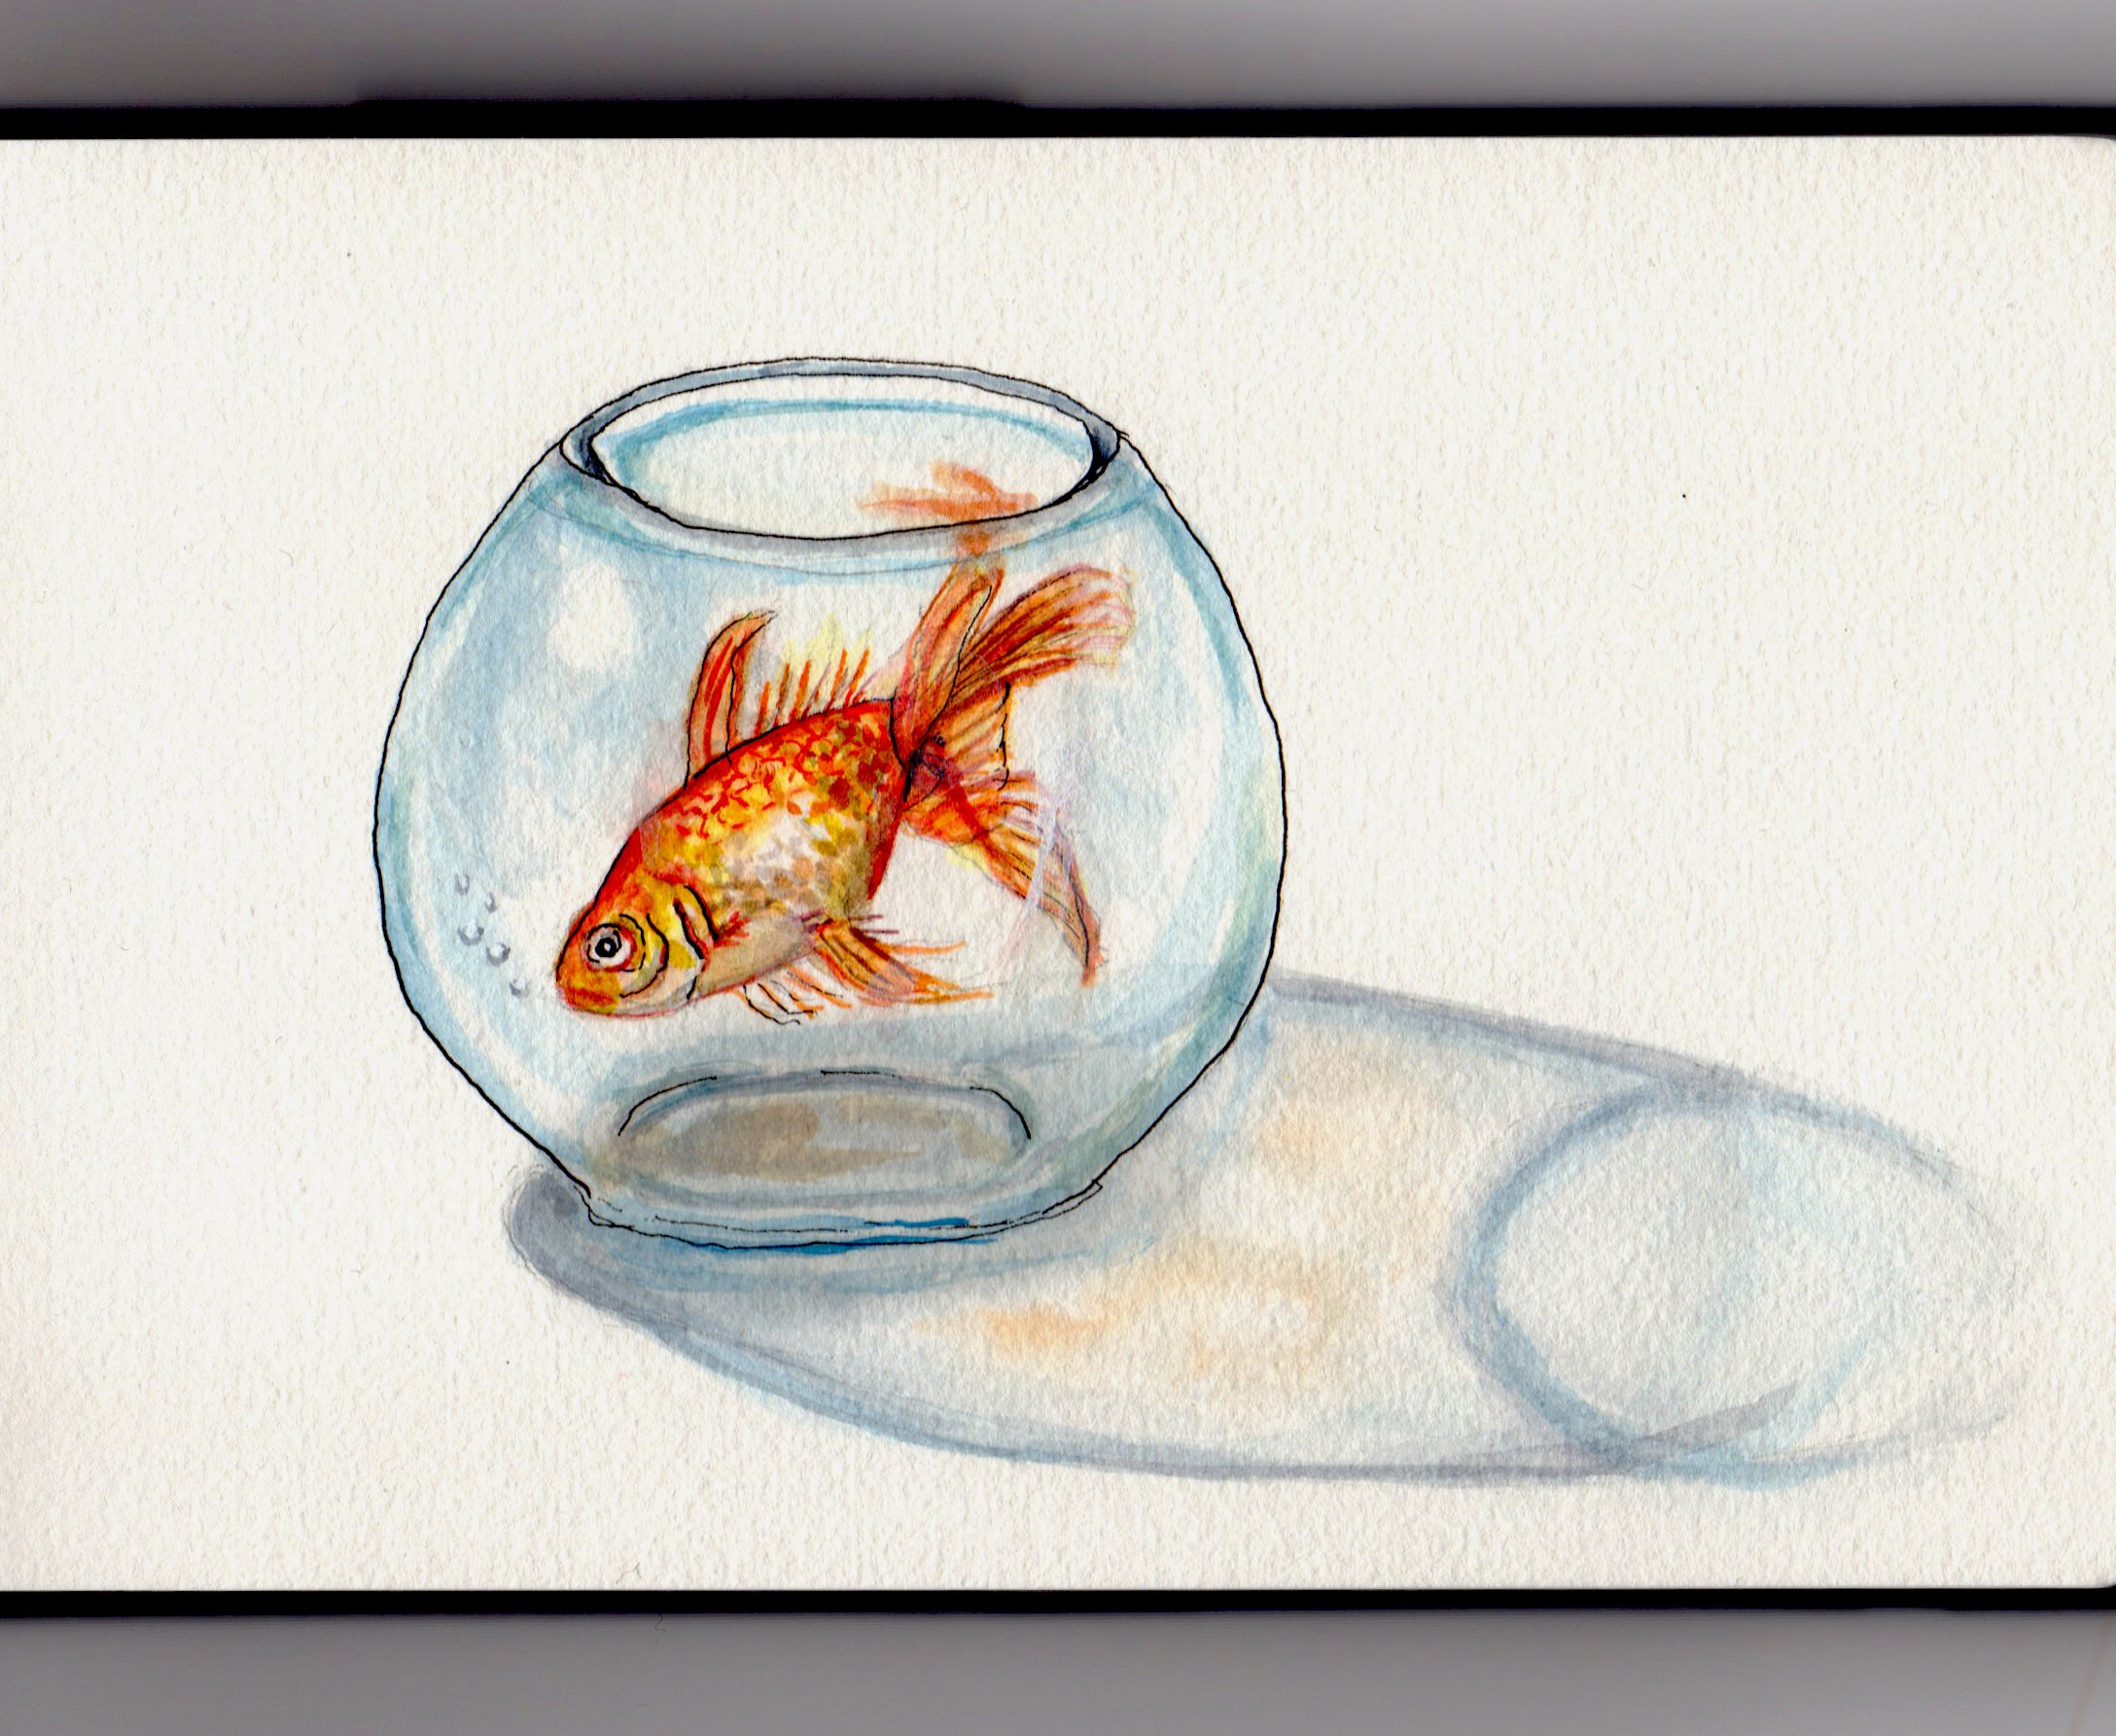 2176x1785 ~ Fish In A Bowl